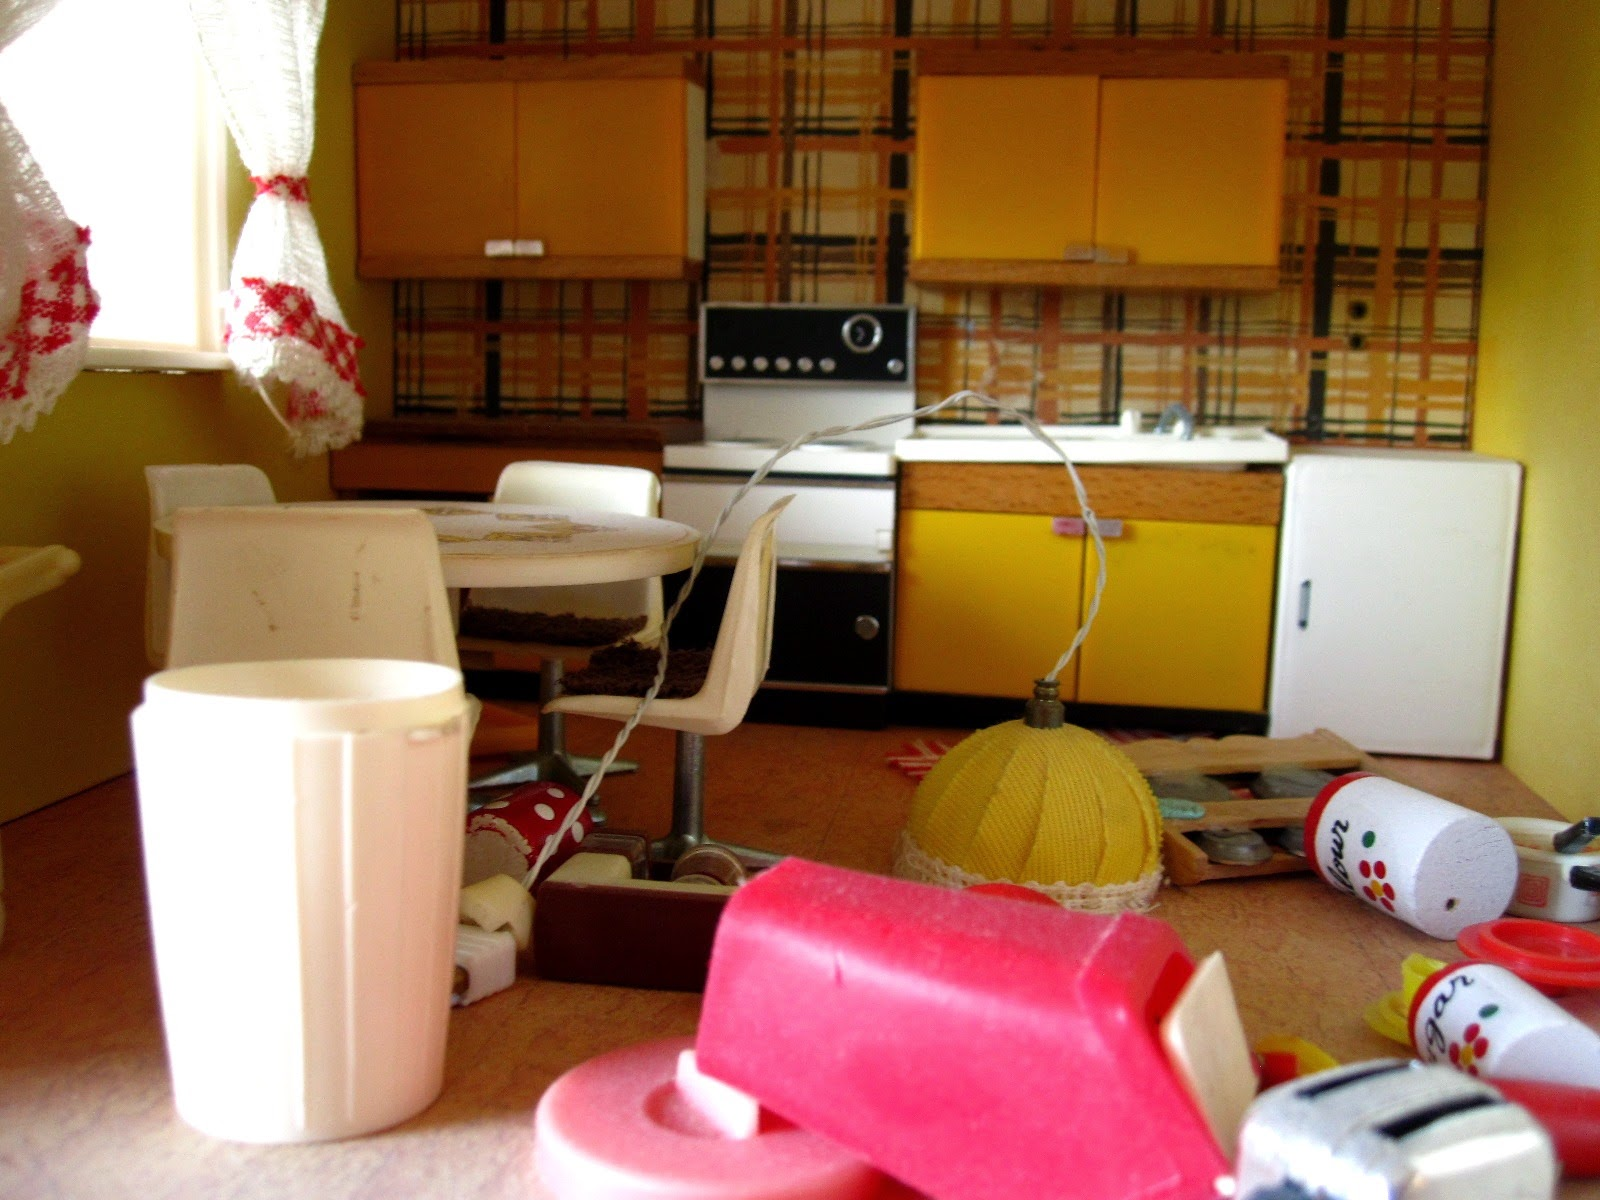 Messy vintage Lundby dolls house kitchen with dusty furniture and items strewn across the floor.